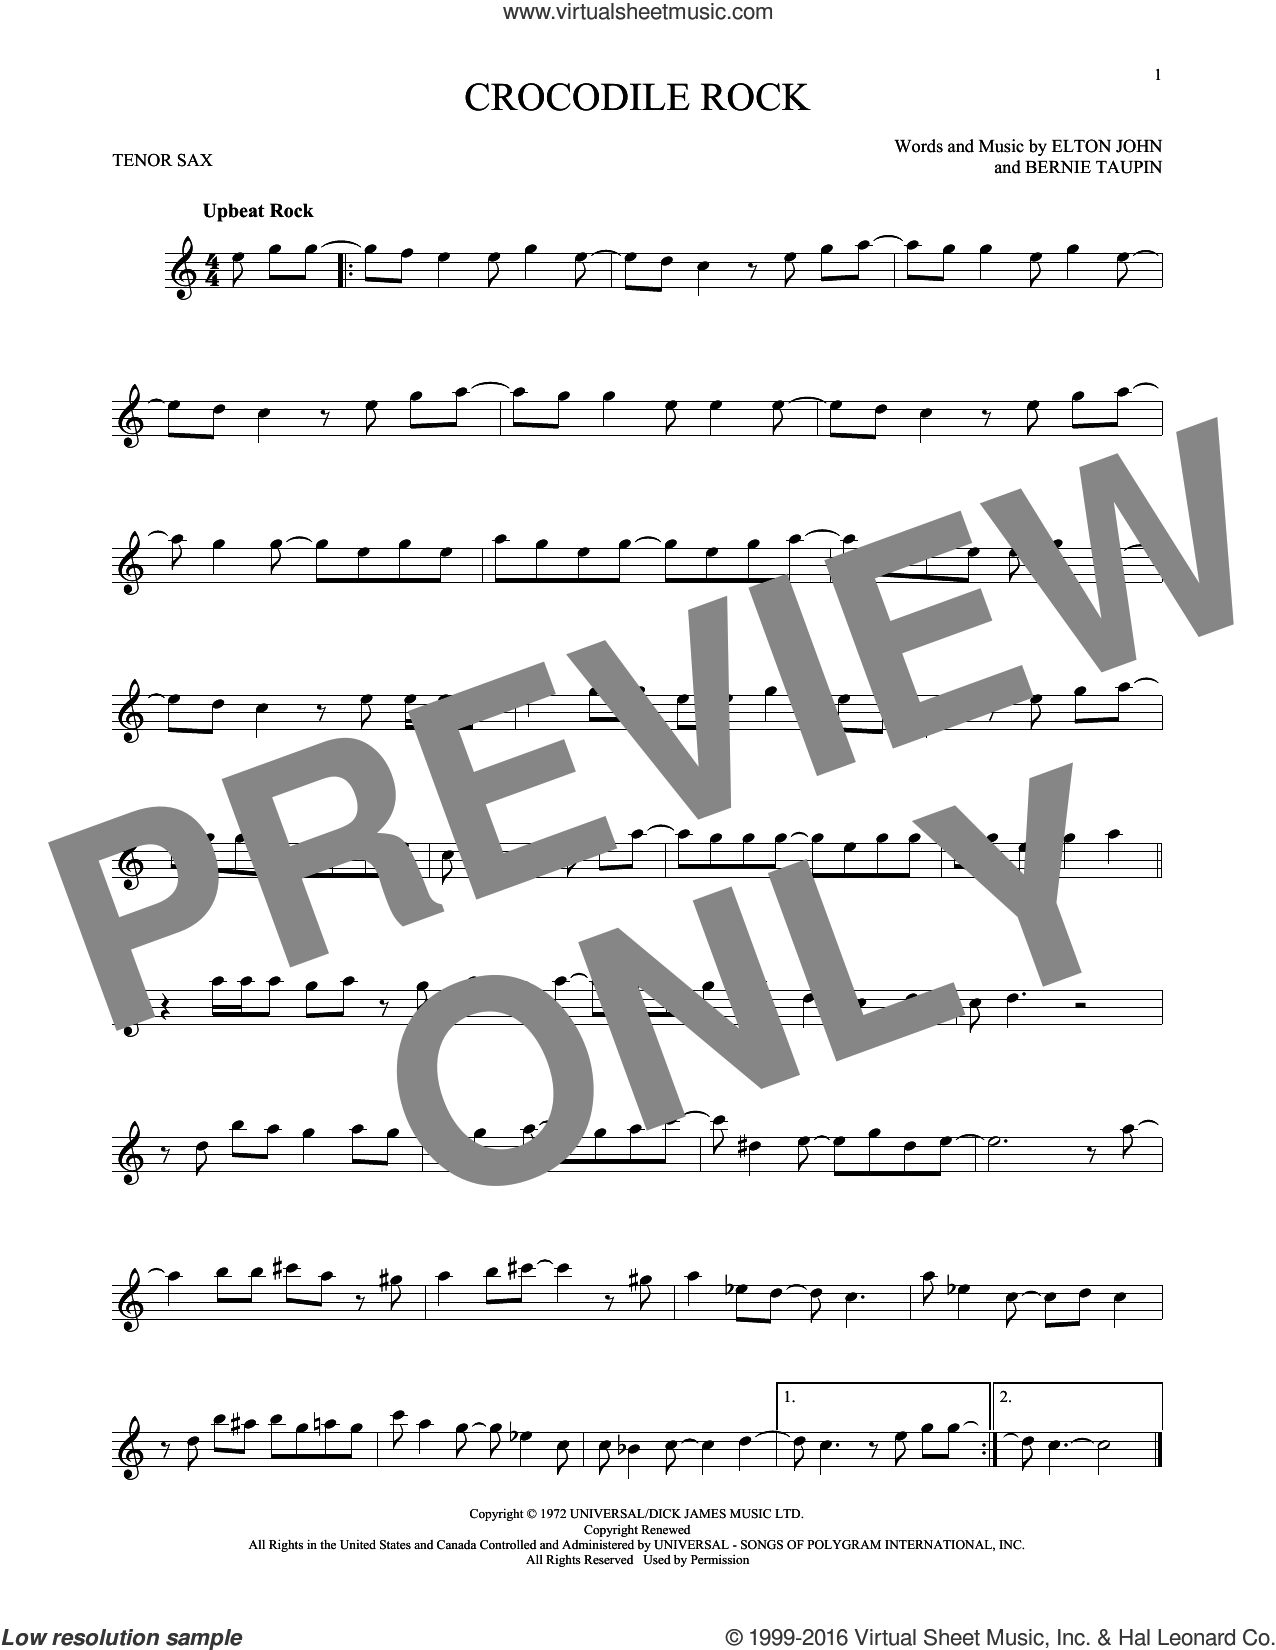 Crocodile Rock sheet music for tenor saxophone solo by Elton John and Bernie Taupin, intermediate. Score Image Preview.